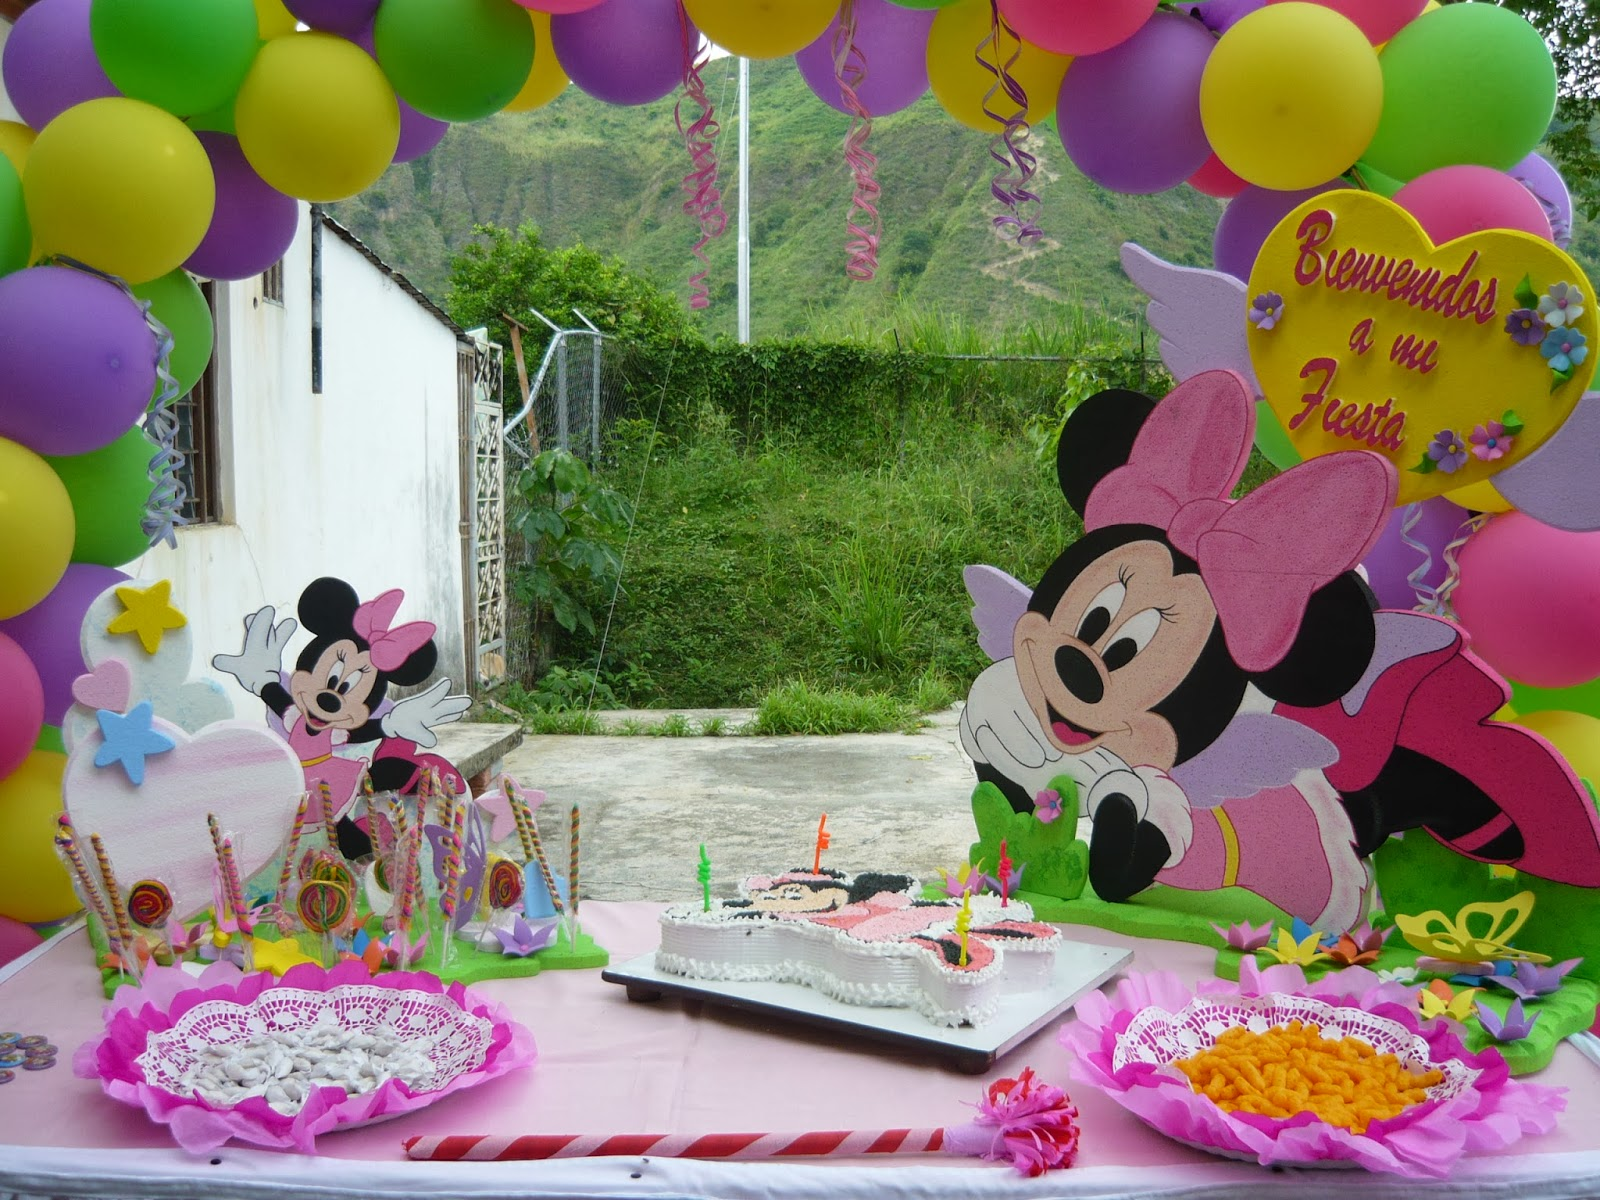 Imagenes fantasia y color ideas para fiesta infantil for Todo decoracion